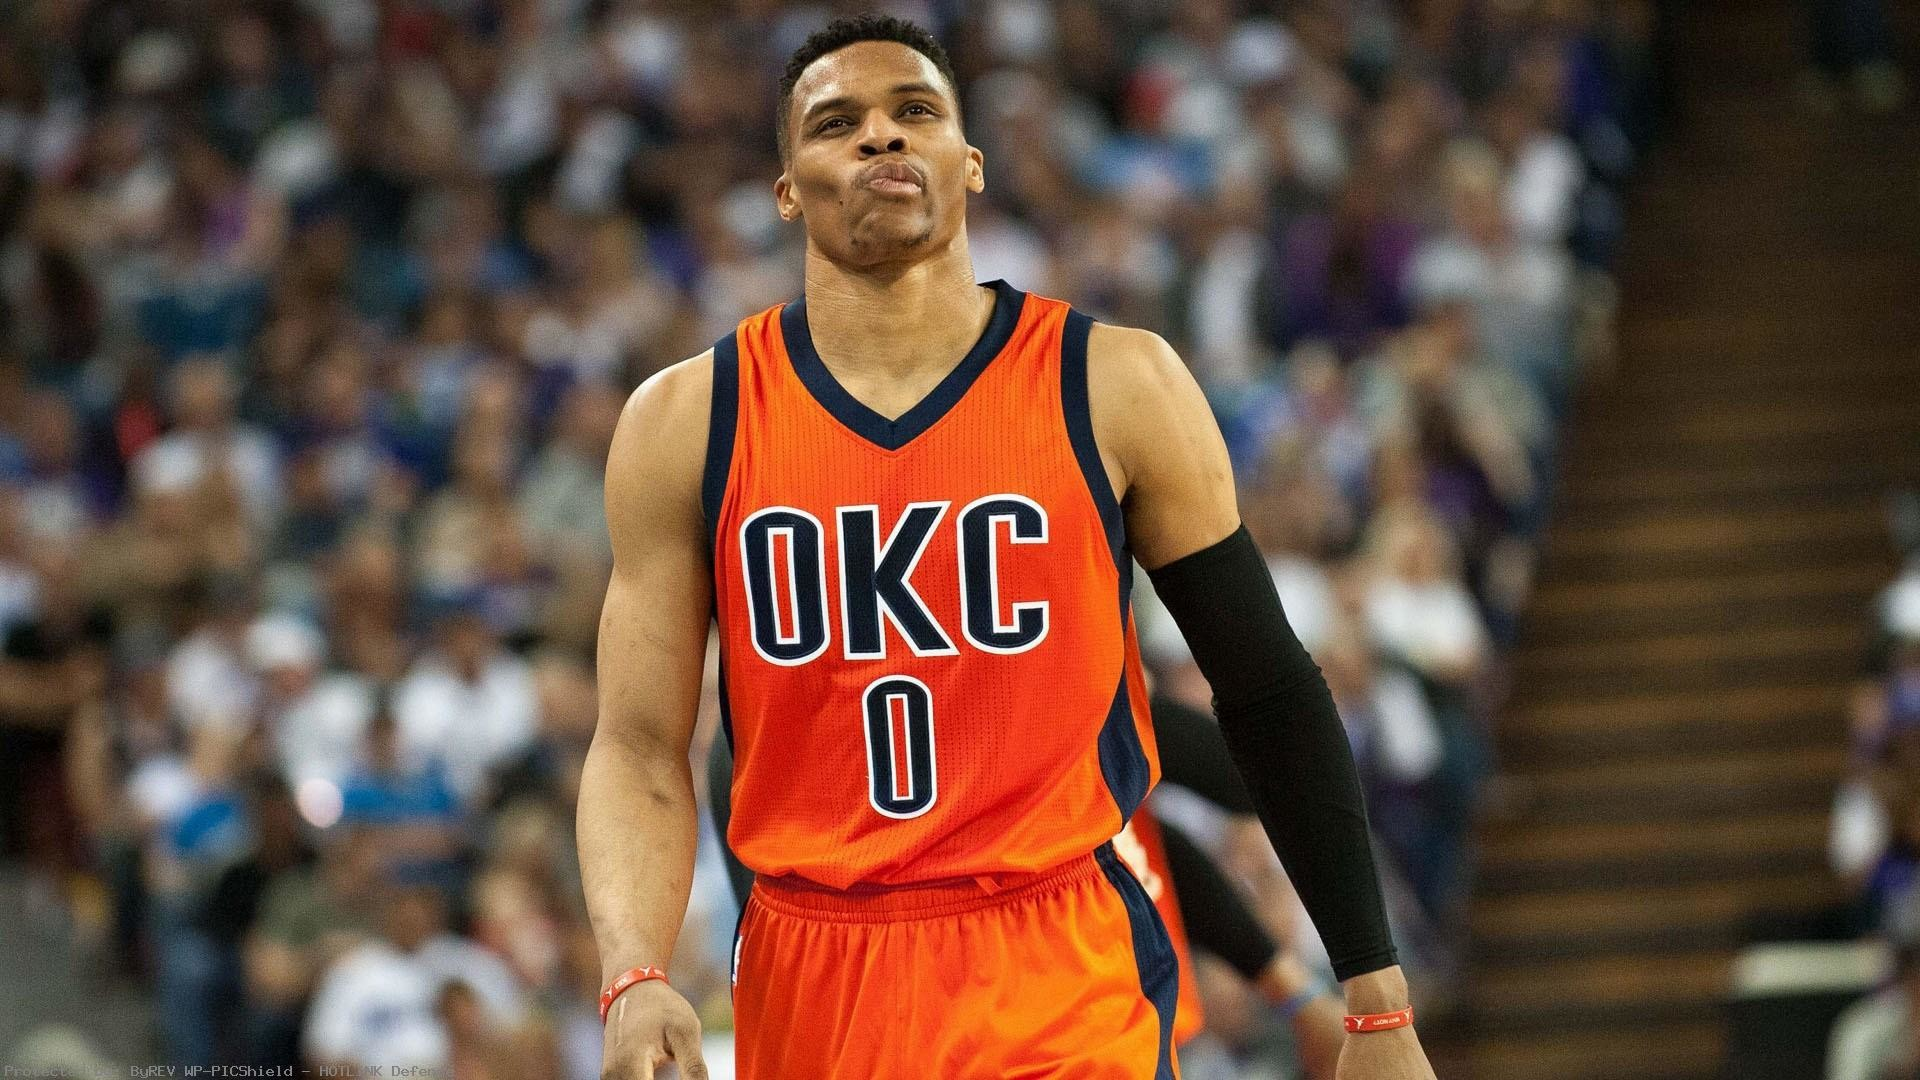 Russell Westbrook Wallpaper HD (78+ images)